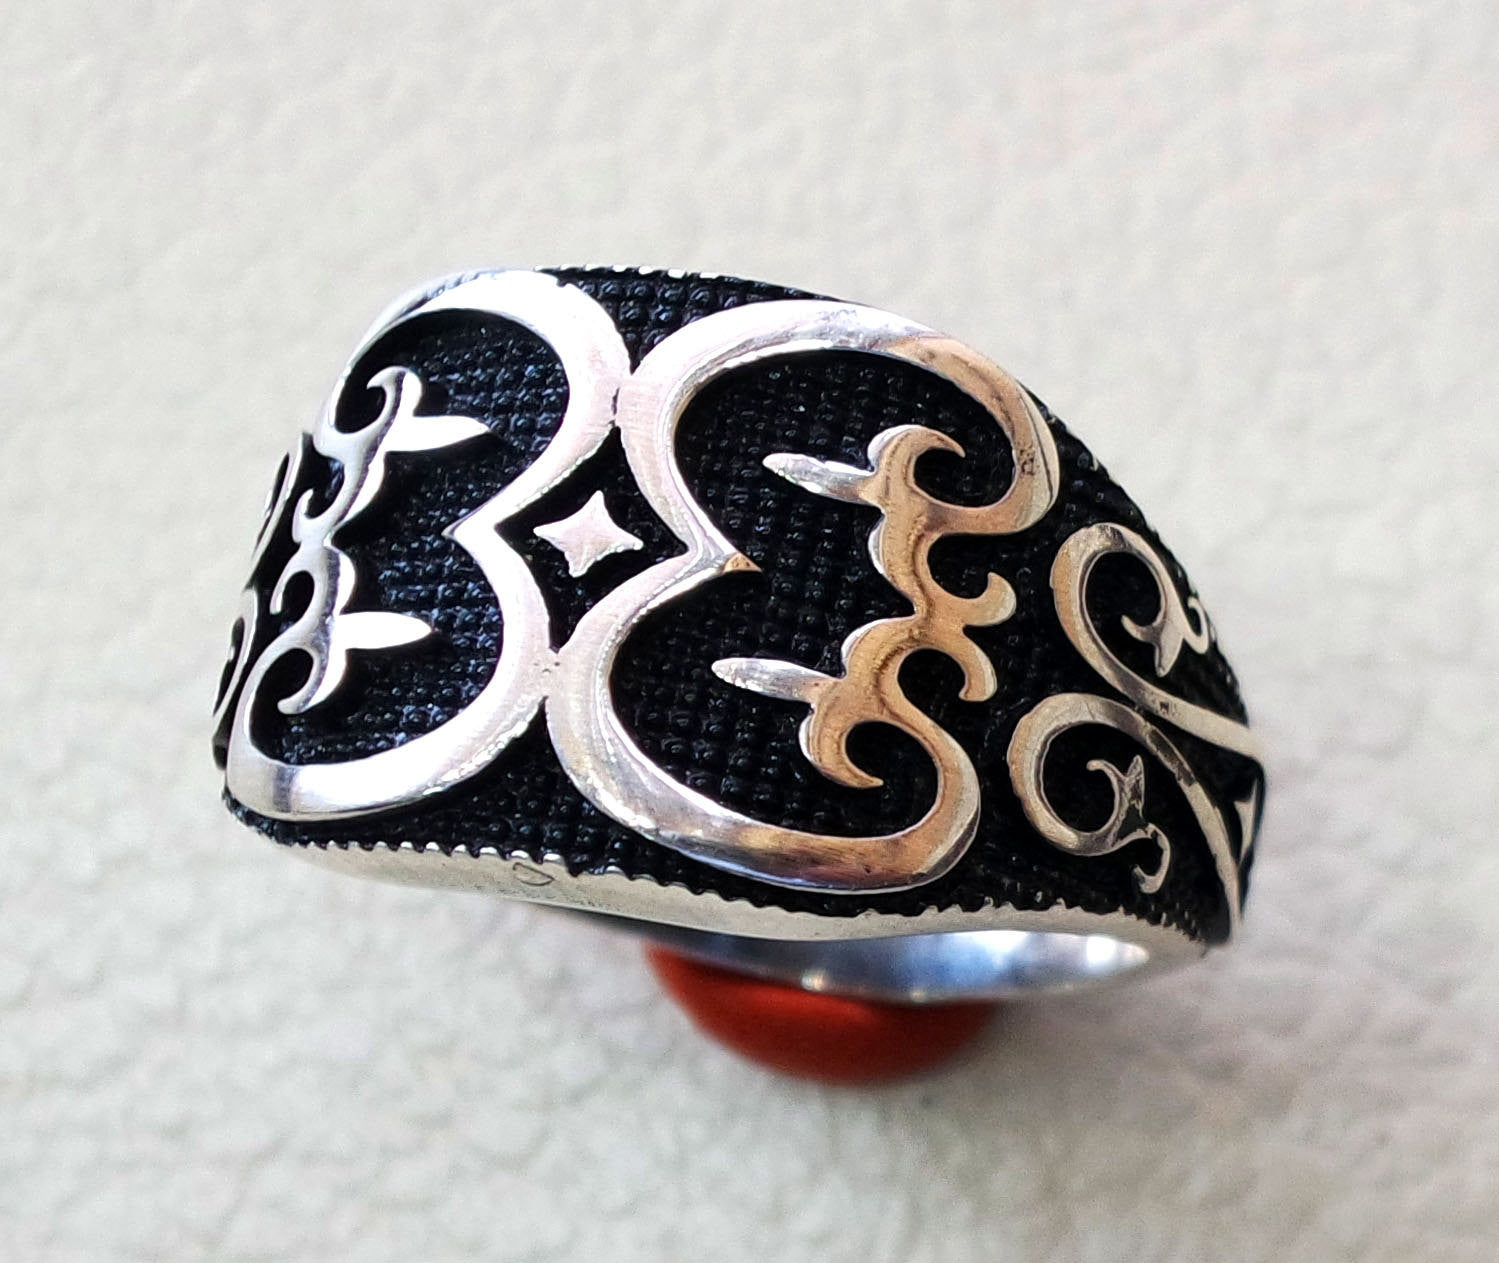 Fluer de lis celtic style heavy sterling silver 925 heavy man heavy symbol ring shape any size antique style high quality jewelry